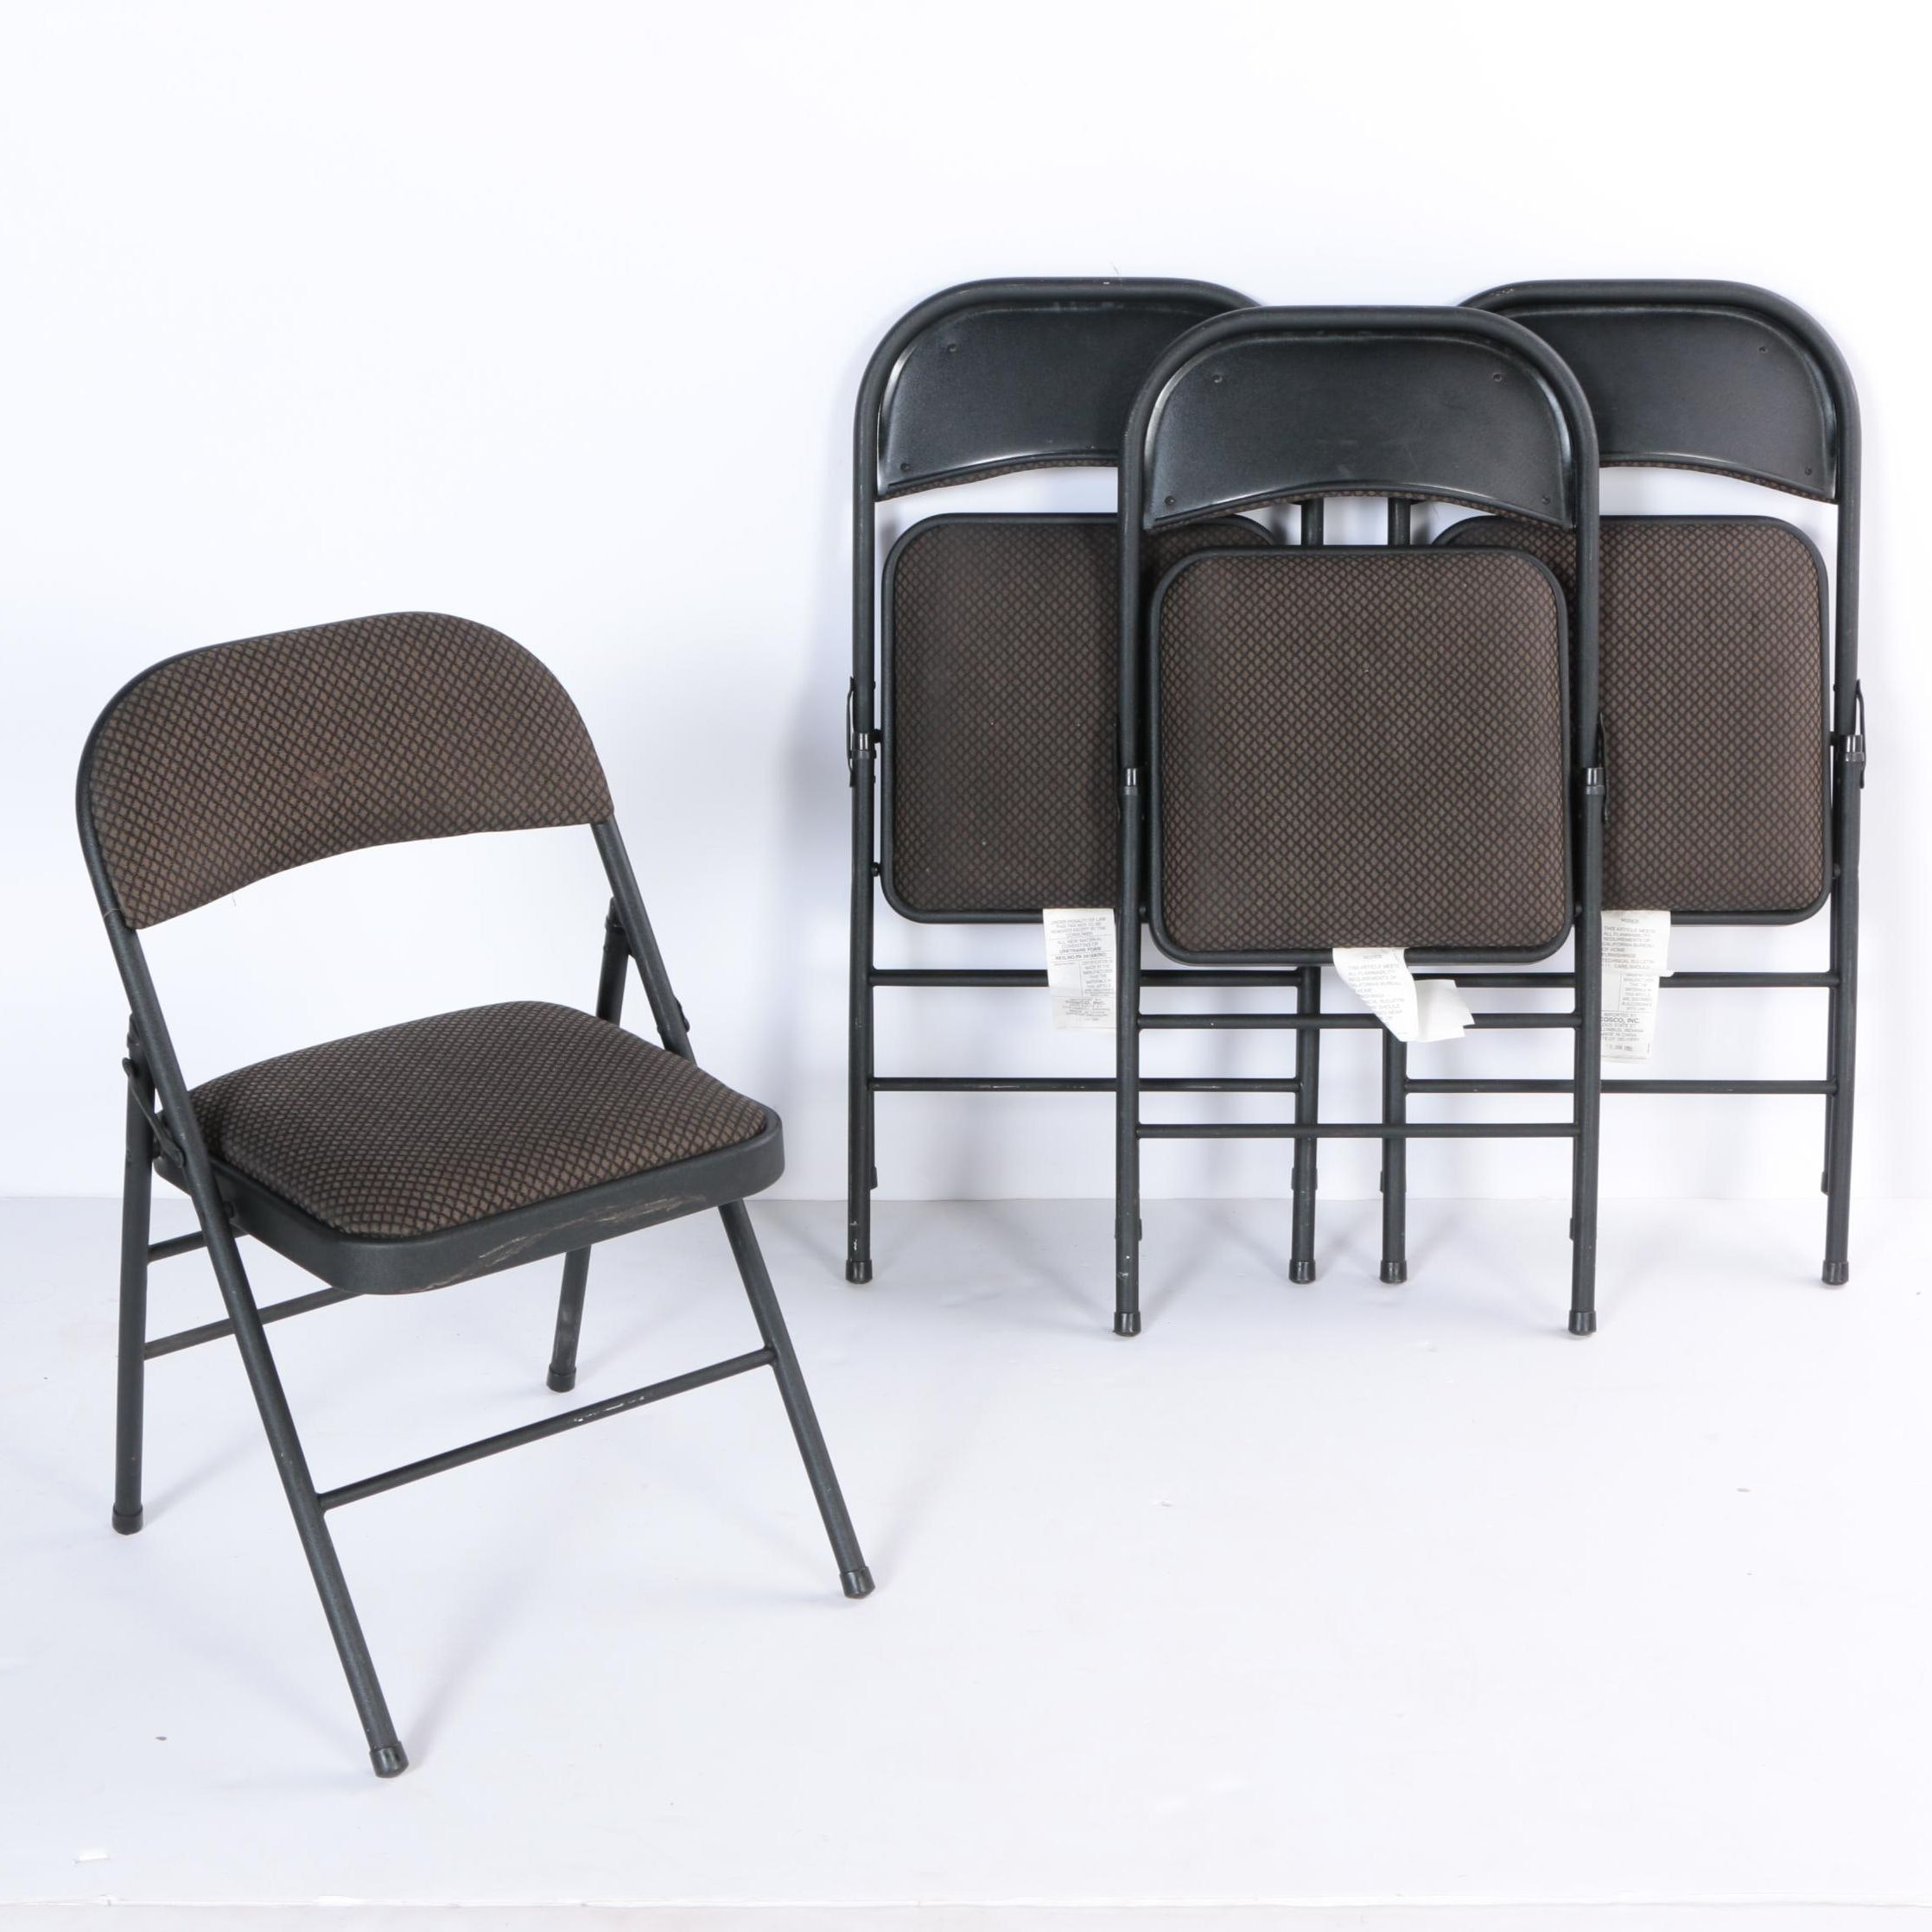 Four Padded Folding Chairs by Cosco